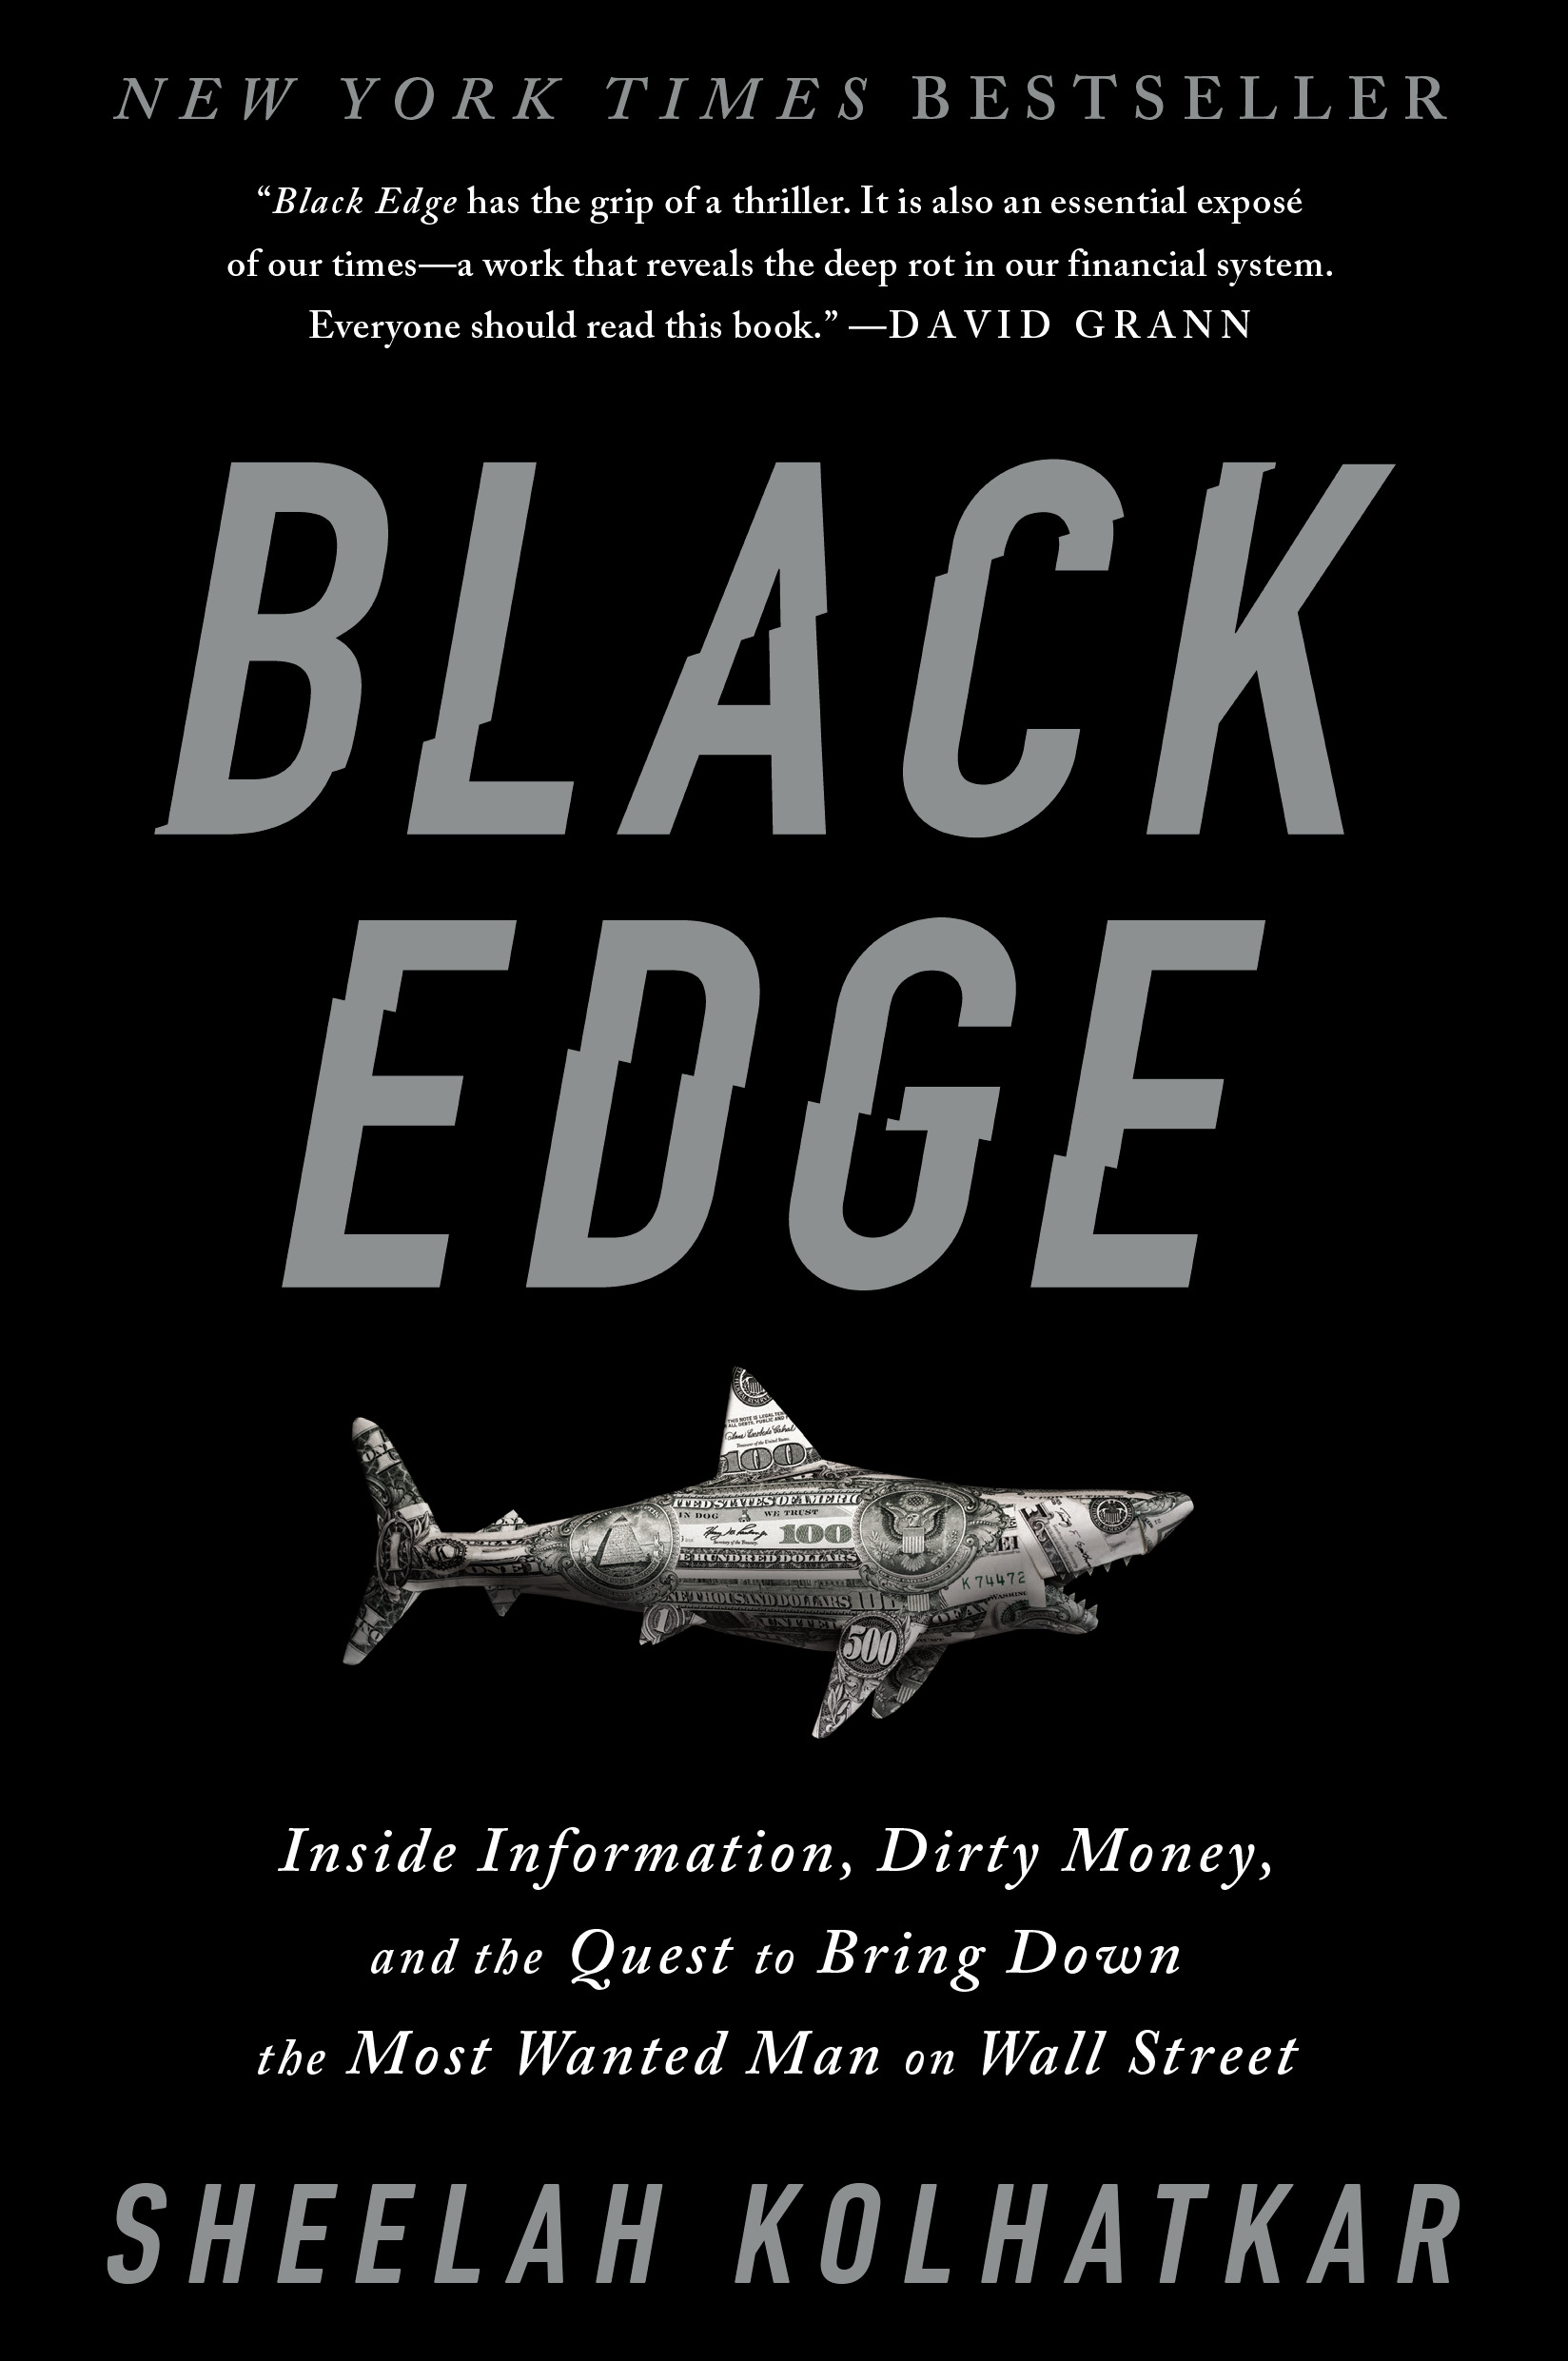 Download Ebook Black Edge by Sheelah Kolhatkar Pdf